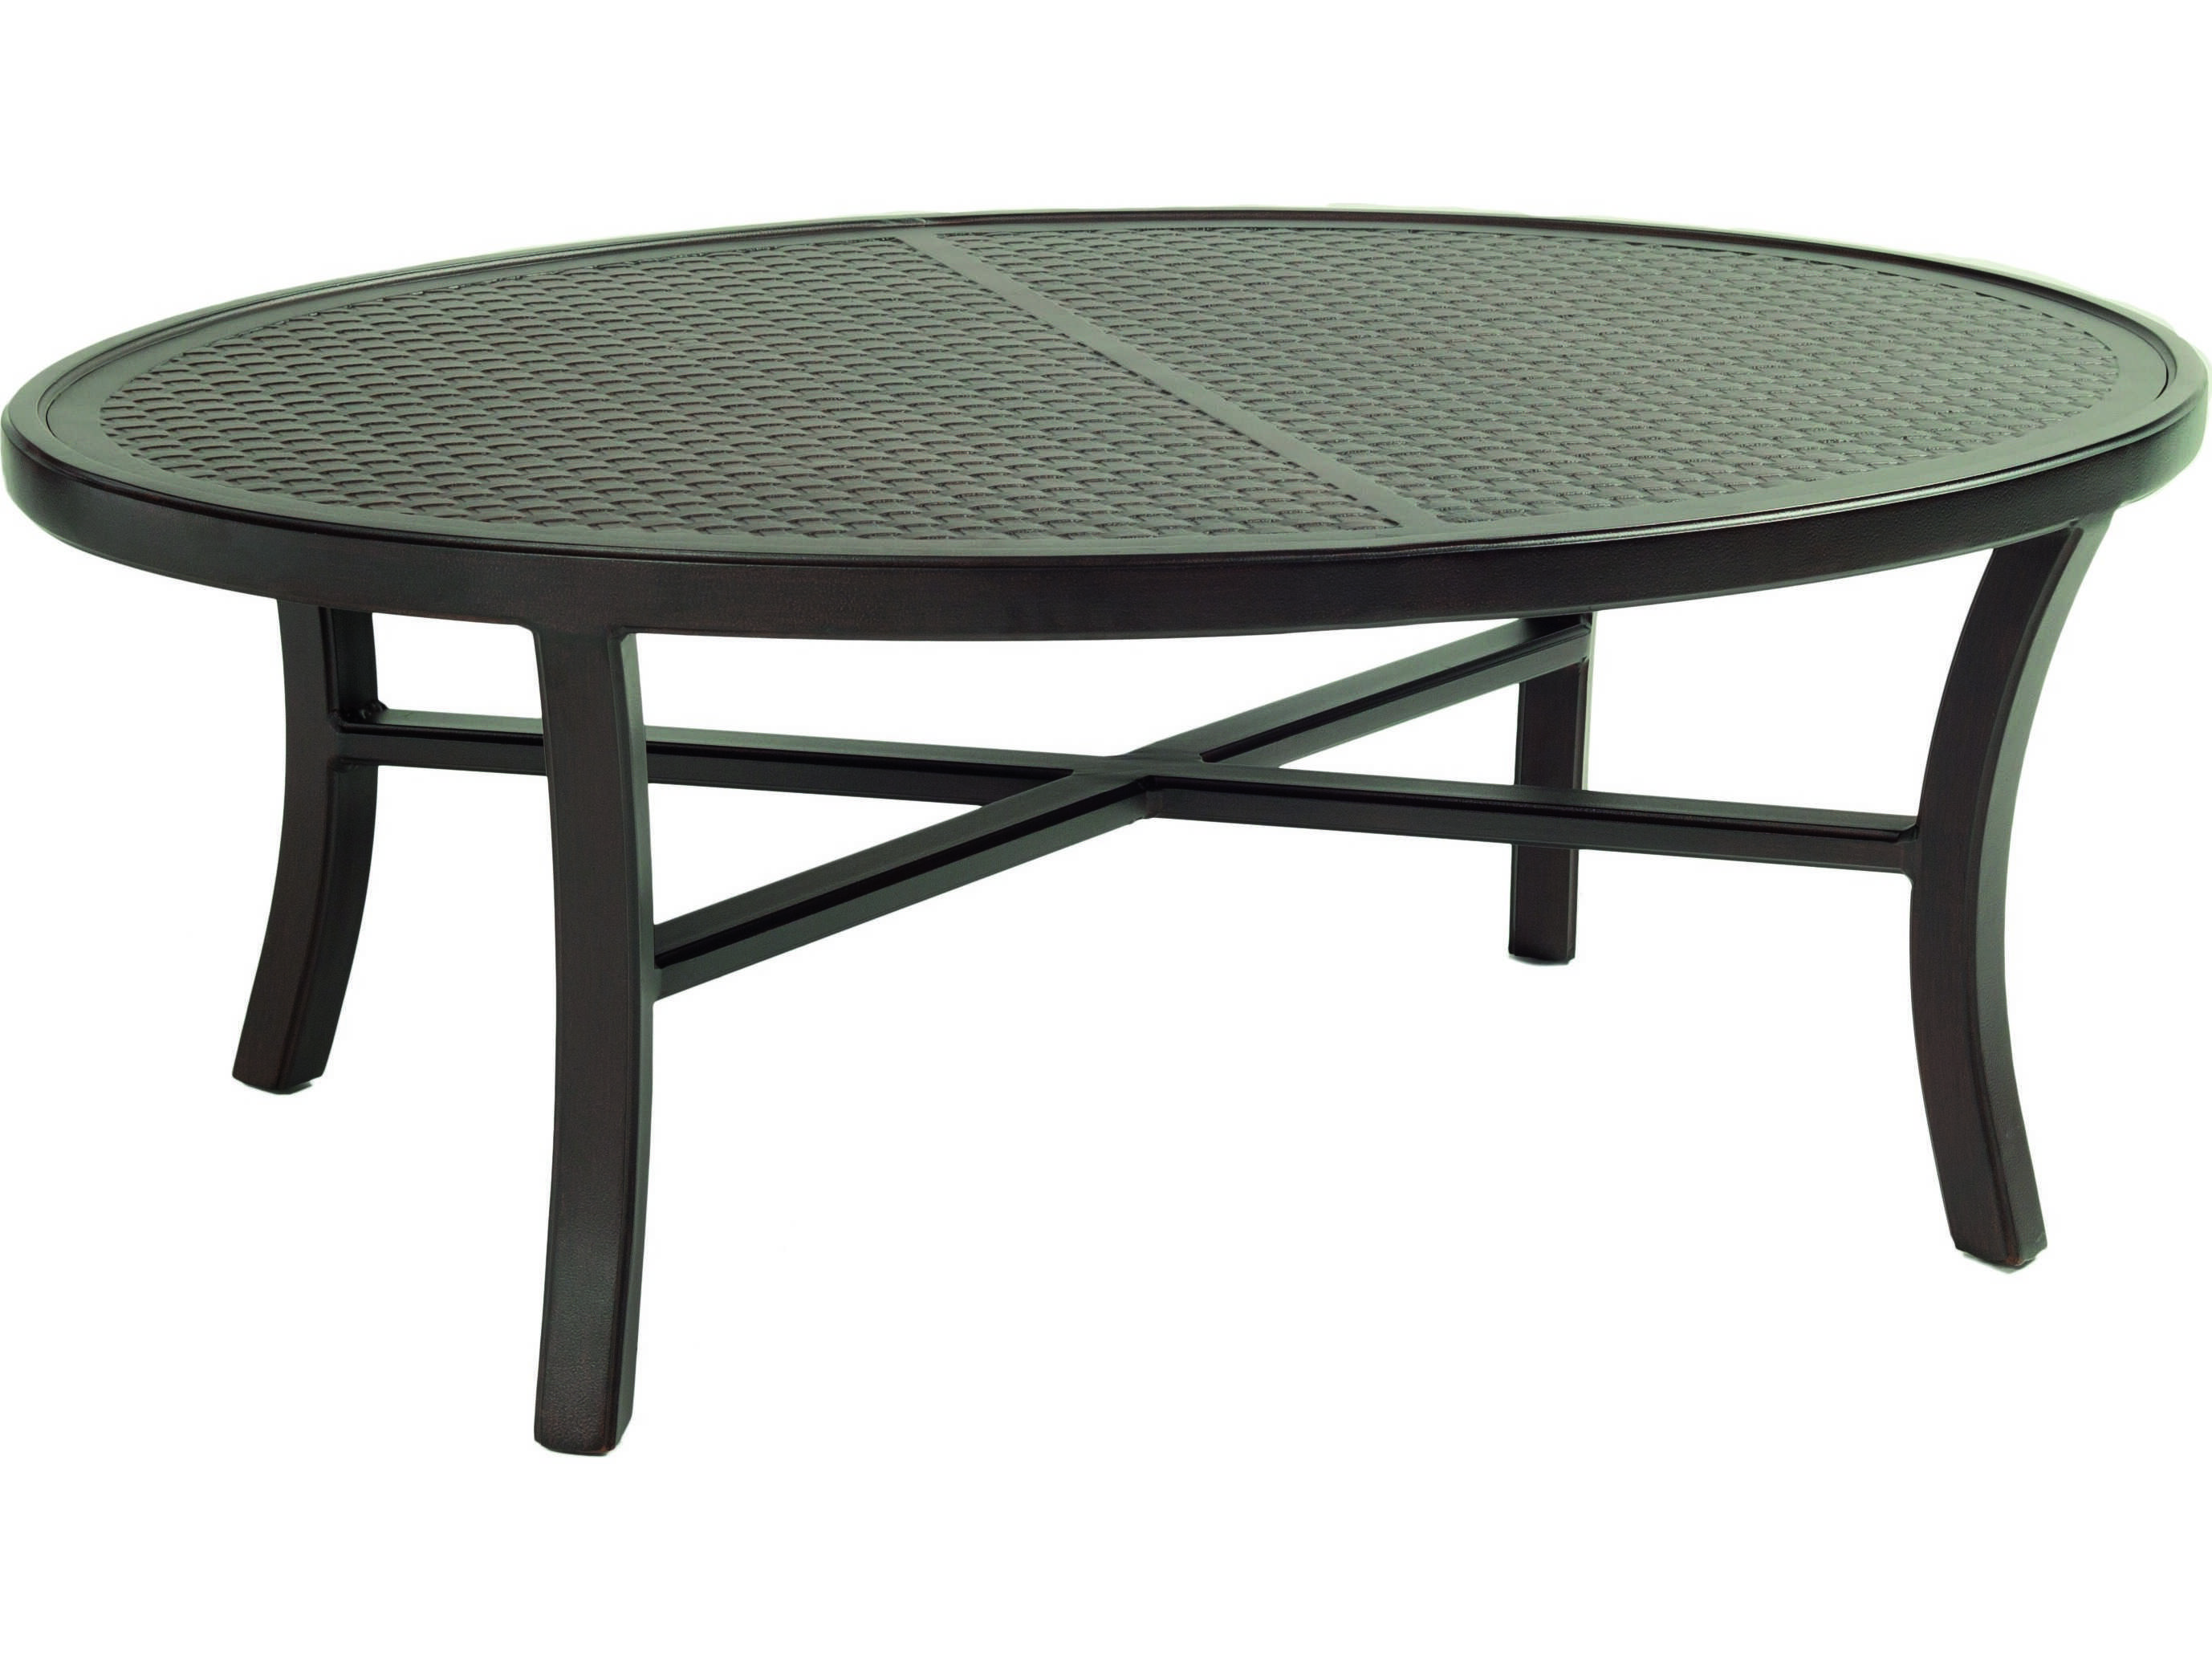 Http Www Patioliving Com Castelle Transitional Tables Cast Aluminum Oval Patio Coffee Table Pfjec3248